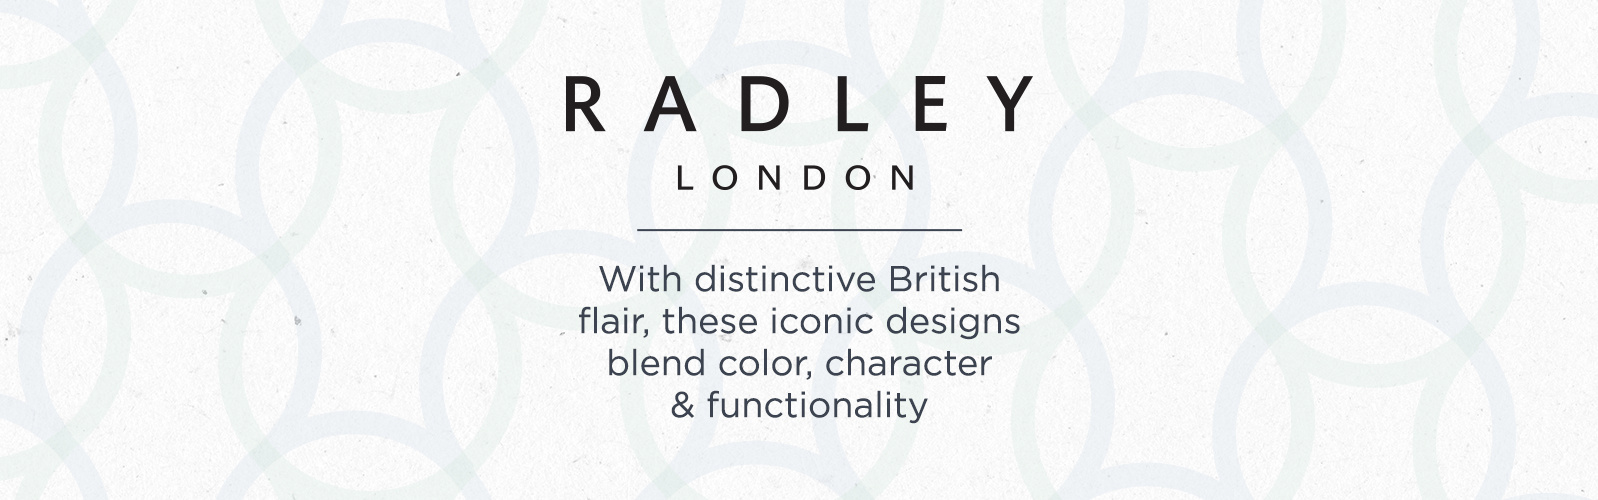 RADLEY London.  With distinctive British flair, these iconic designs blend color, character & functionality